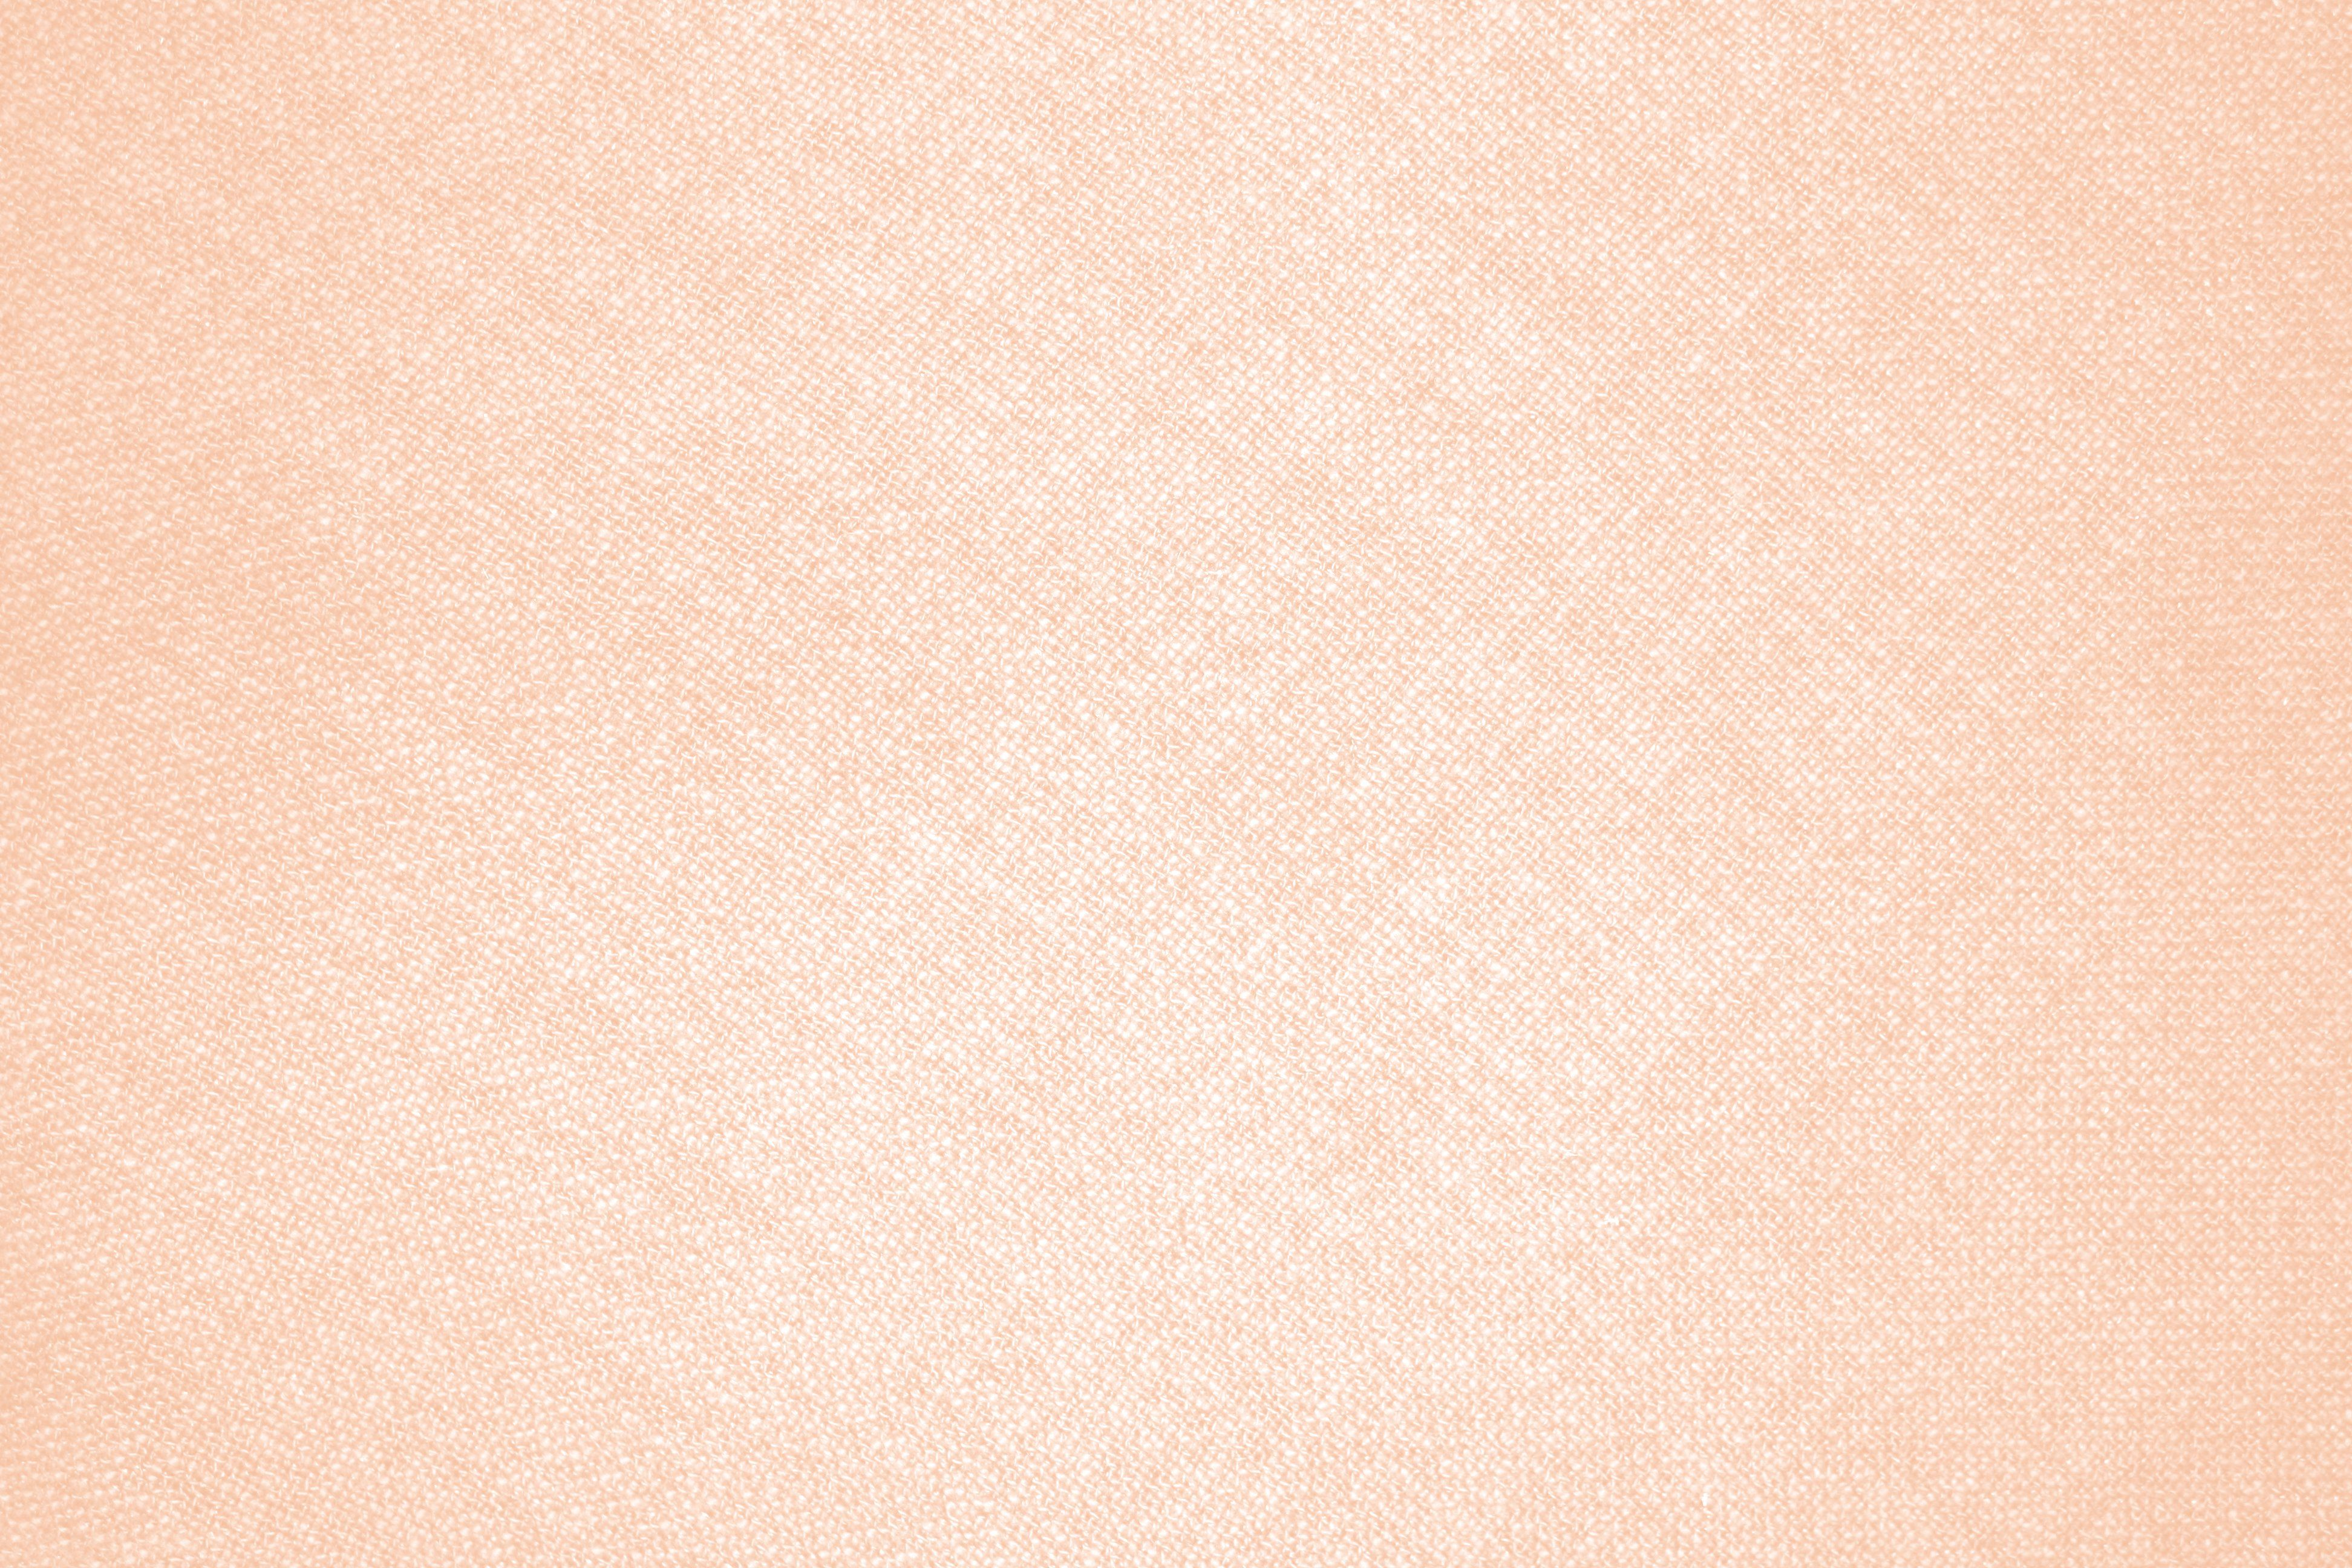 Peach Colored Fabric Texture Thinking A Peach And Gray Room With Silver And Gold Accents Fabric Decor Textured Wallpaper Upholstery Fabric